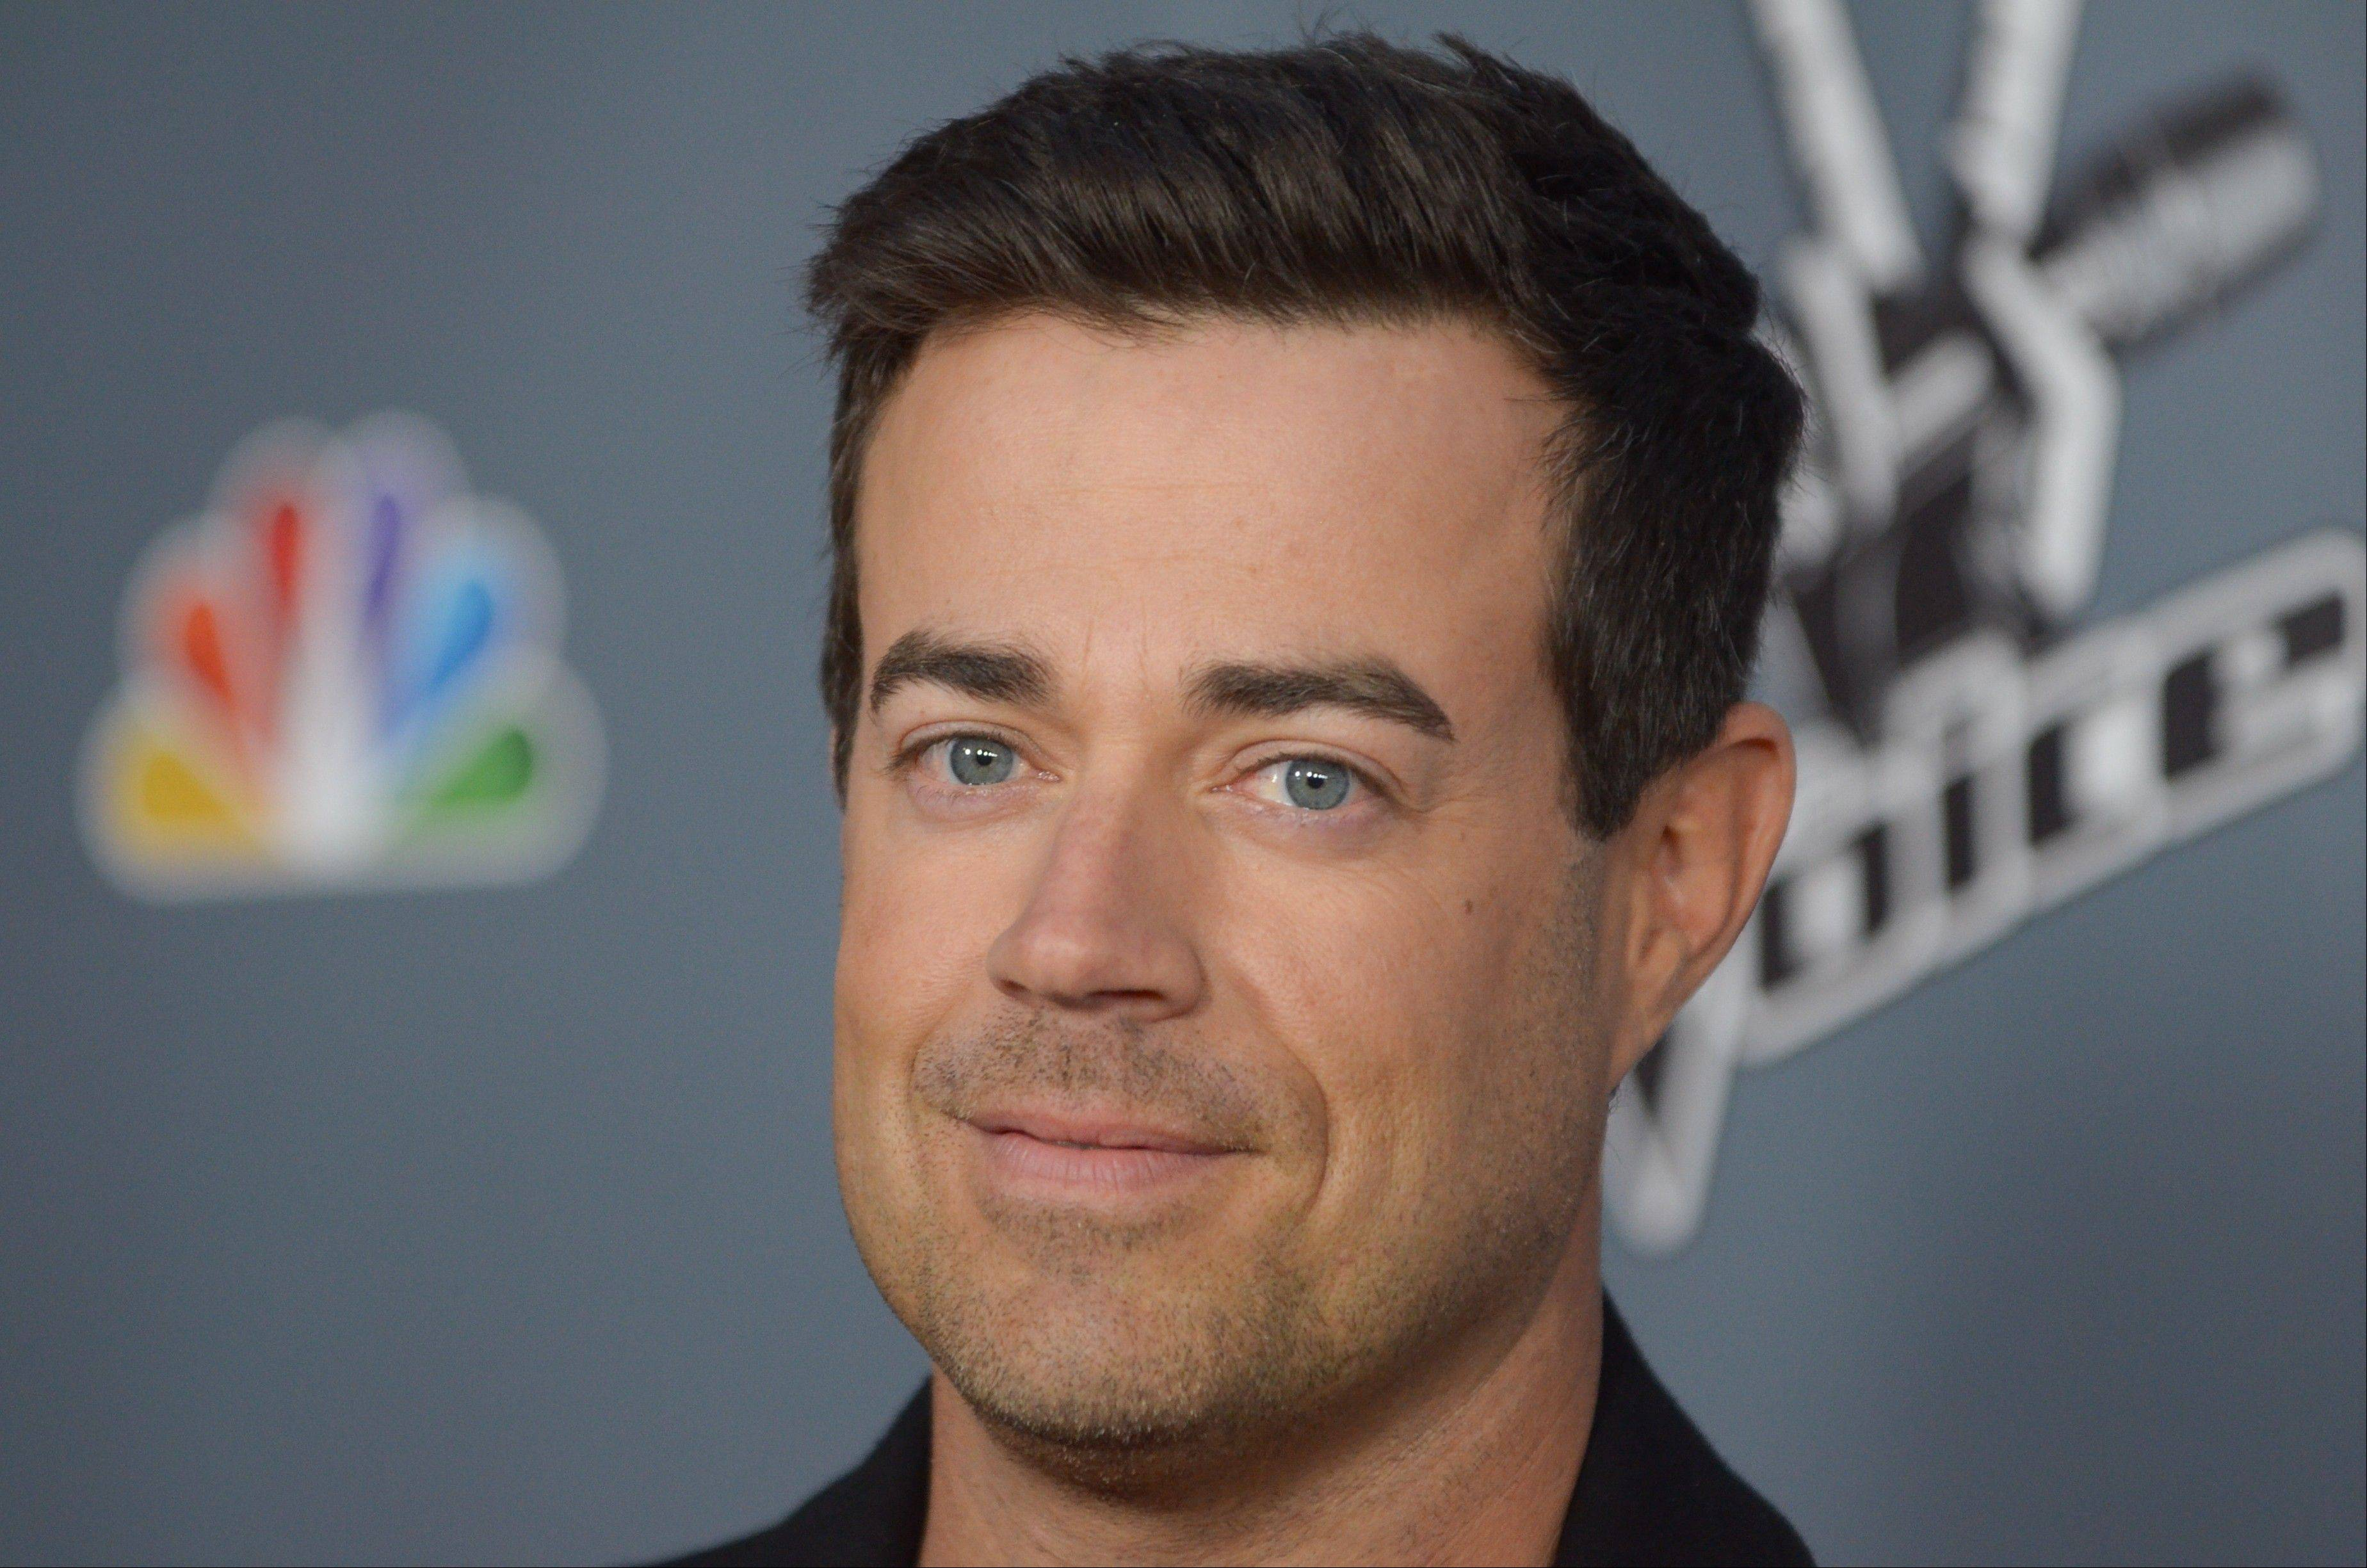 NBC said Wednesday that �Last Call with Carson Daly� has been renewed for a 13th season.